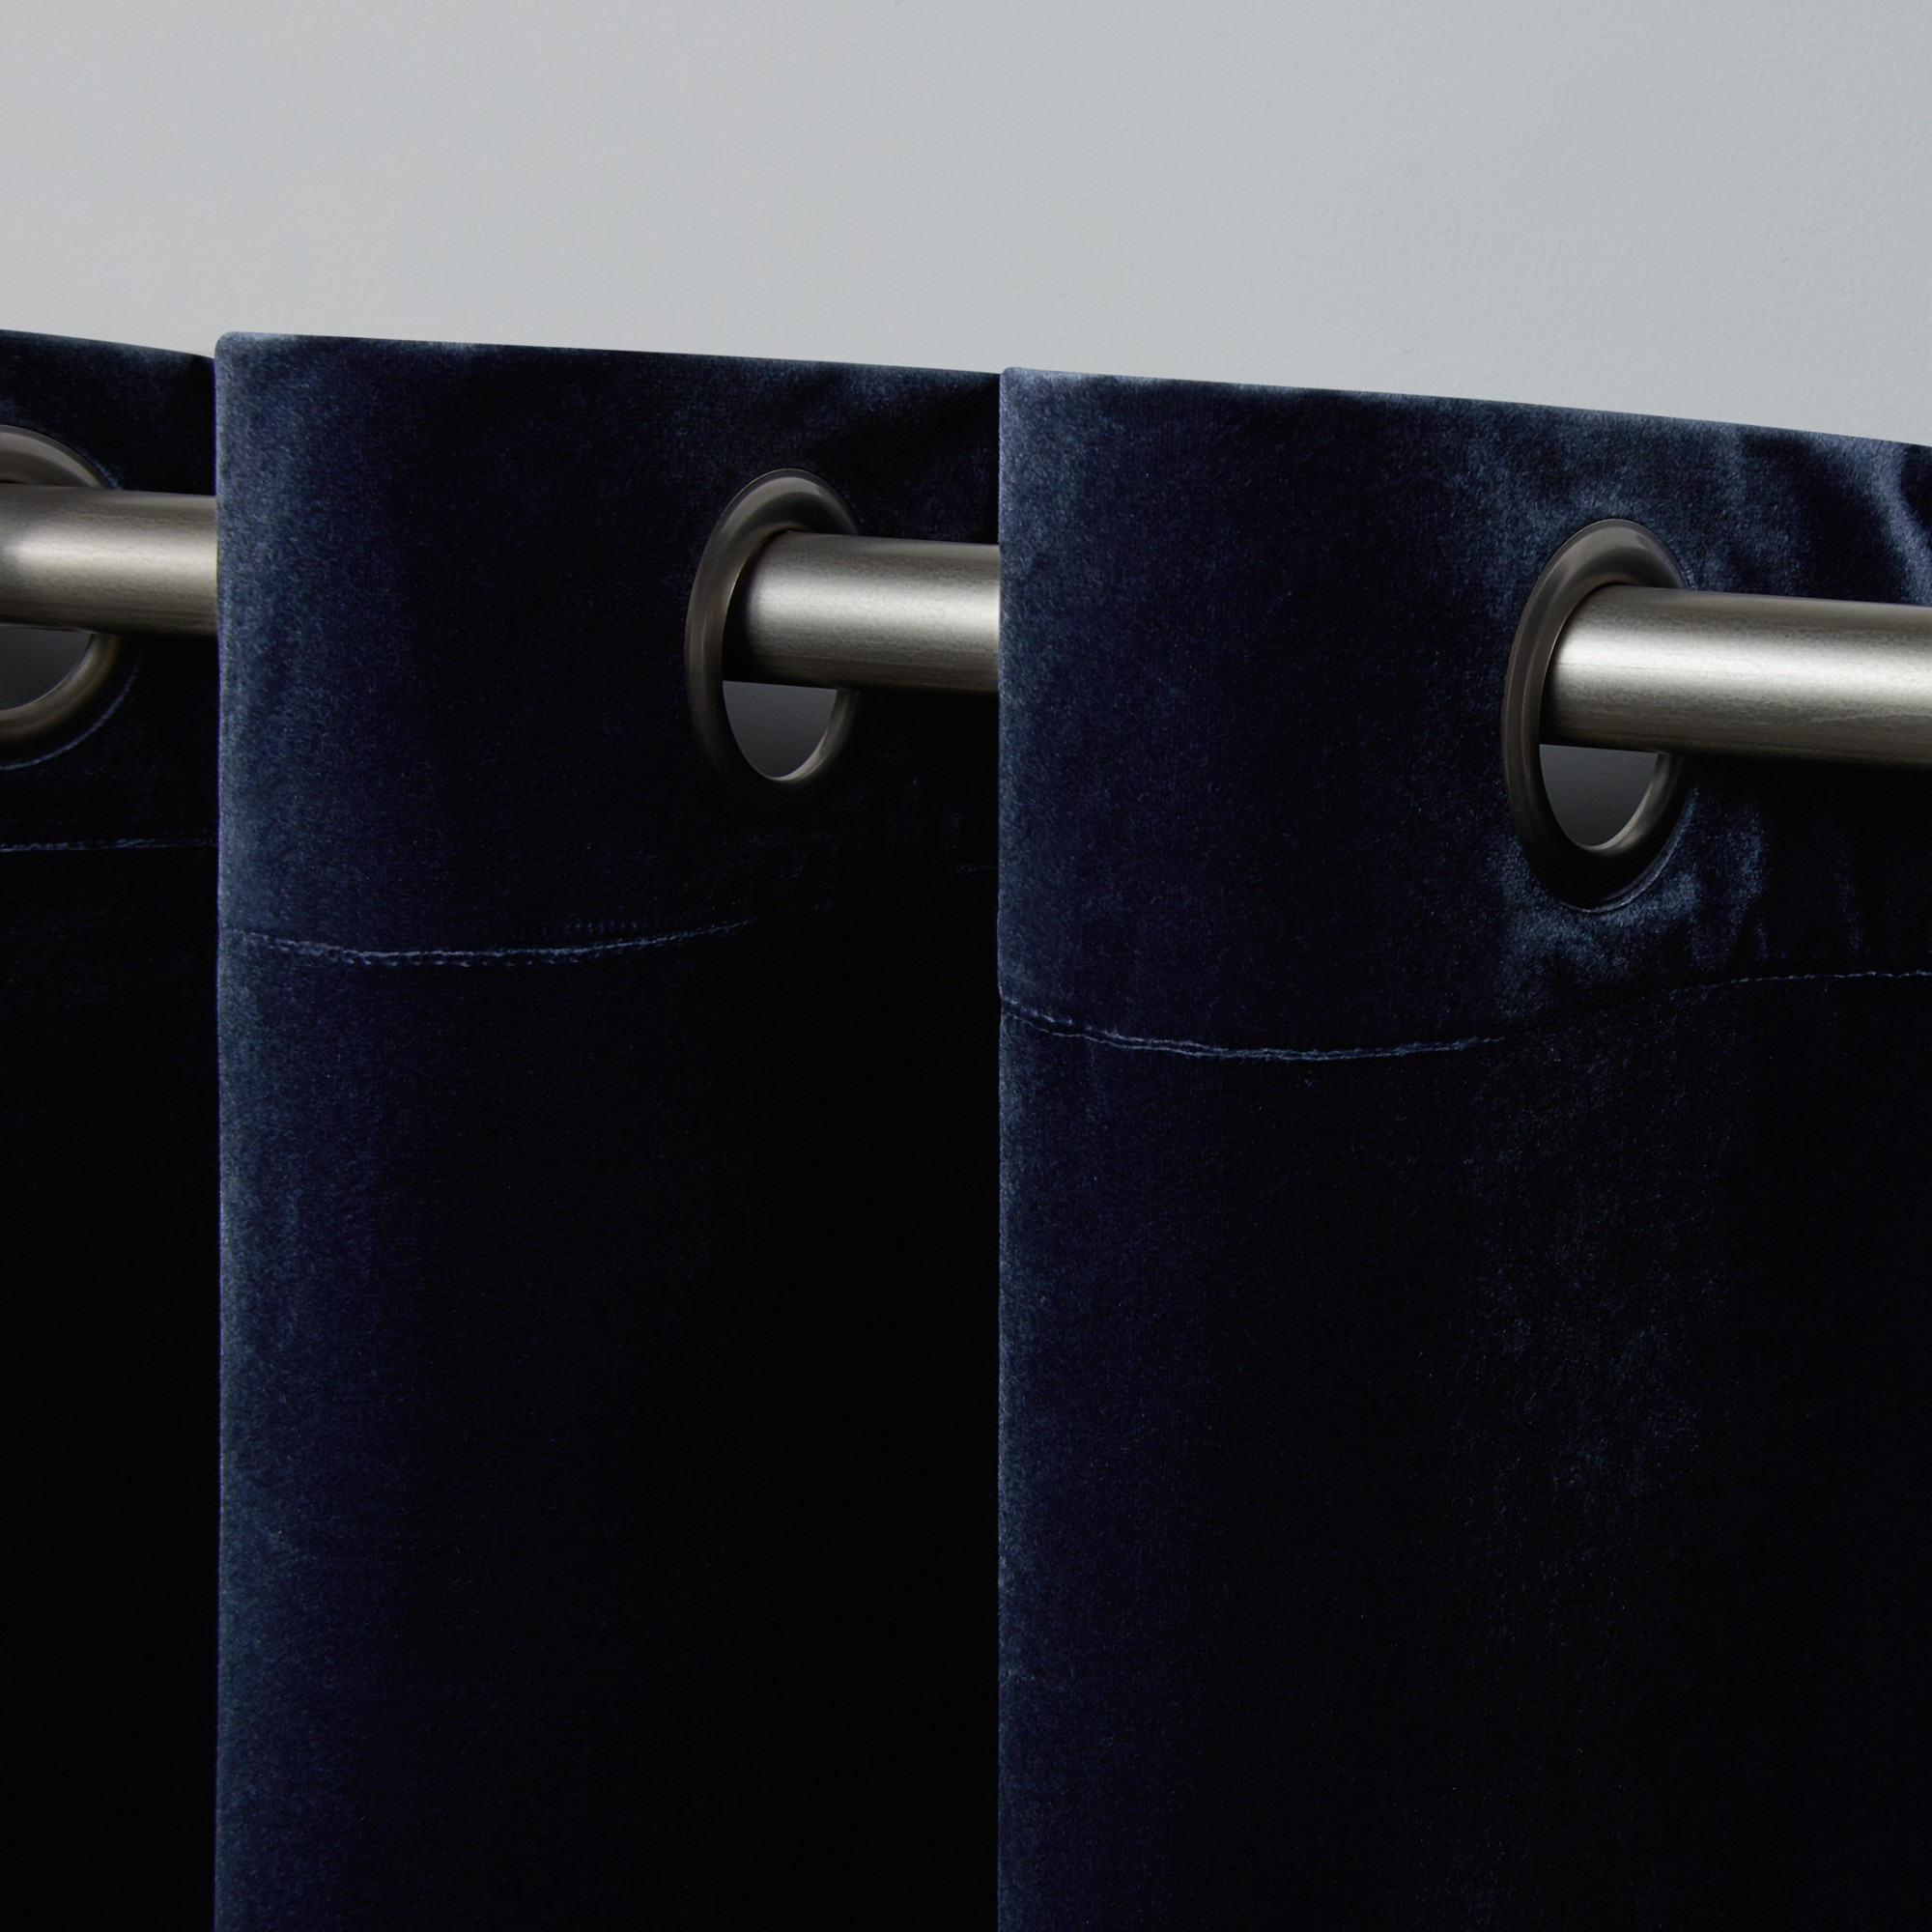 Exclusive Home Curtains 2 Pack Velvet Heavyweight Grommet Top Curtain Panels With Regard To Velvet Heavyweight Grommet Top Curtain Panel Pairs (View 11 of 30)